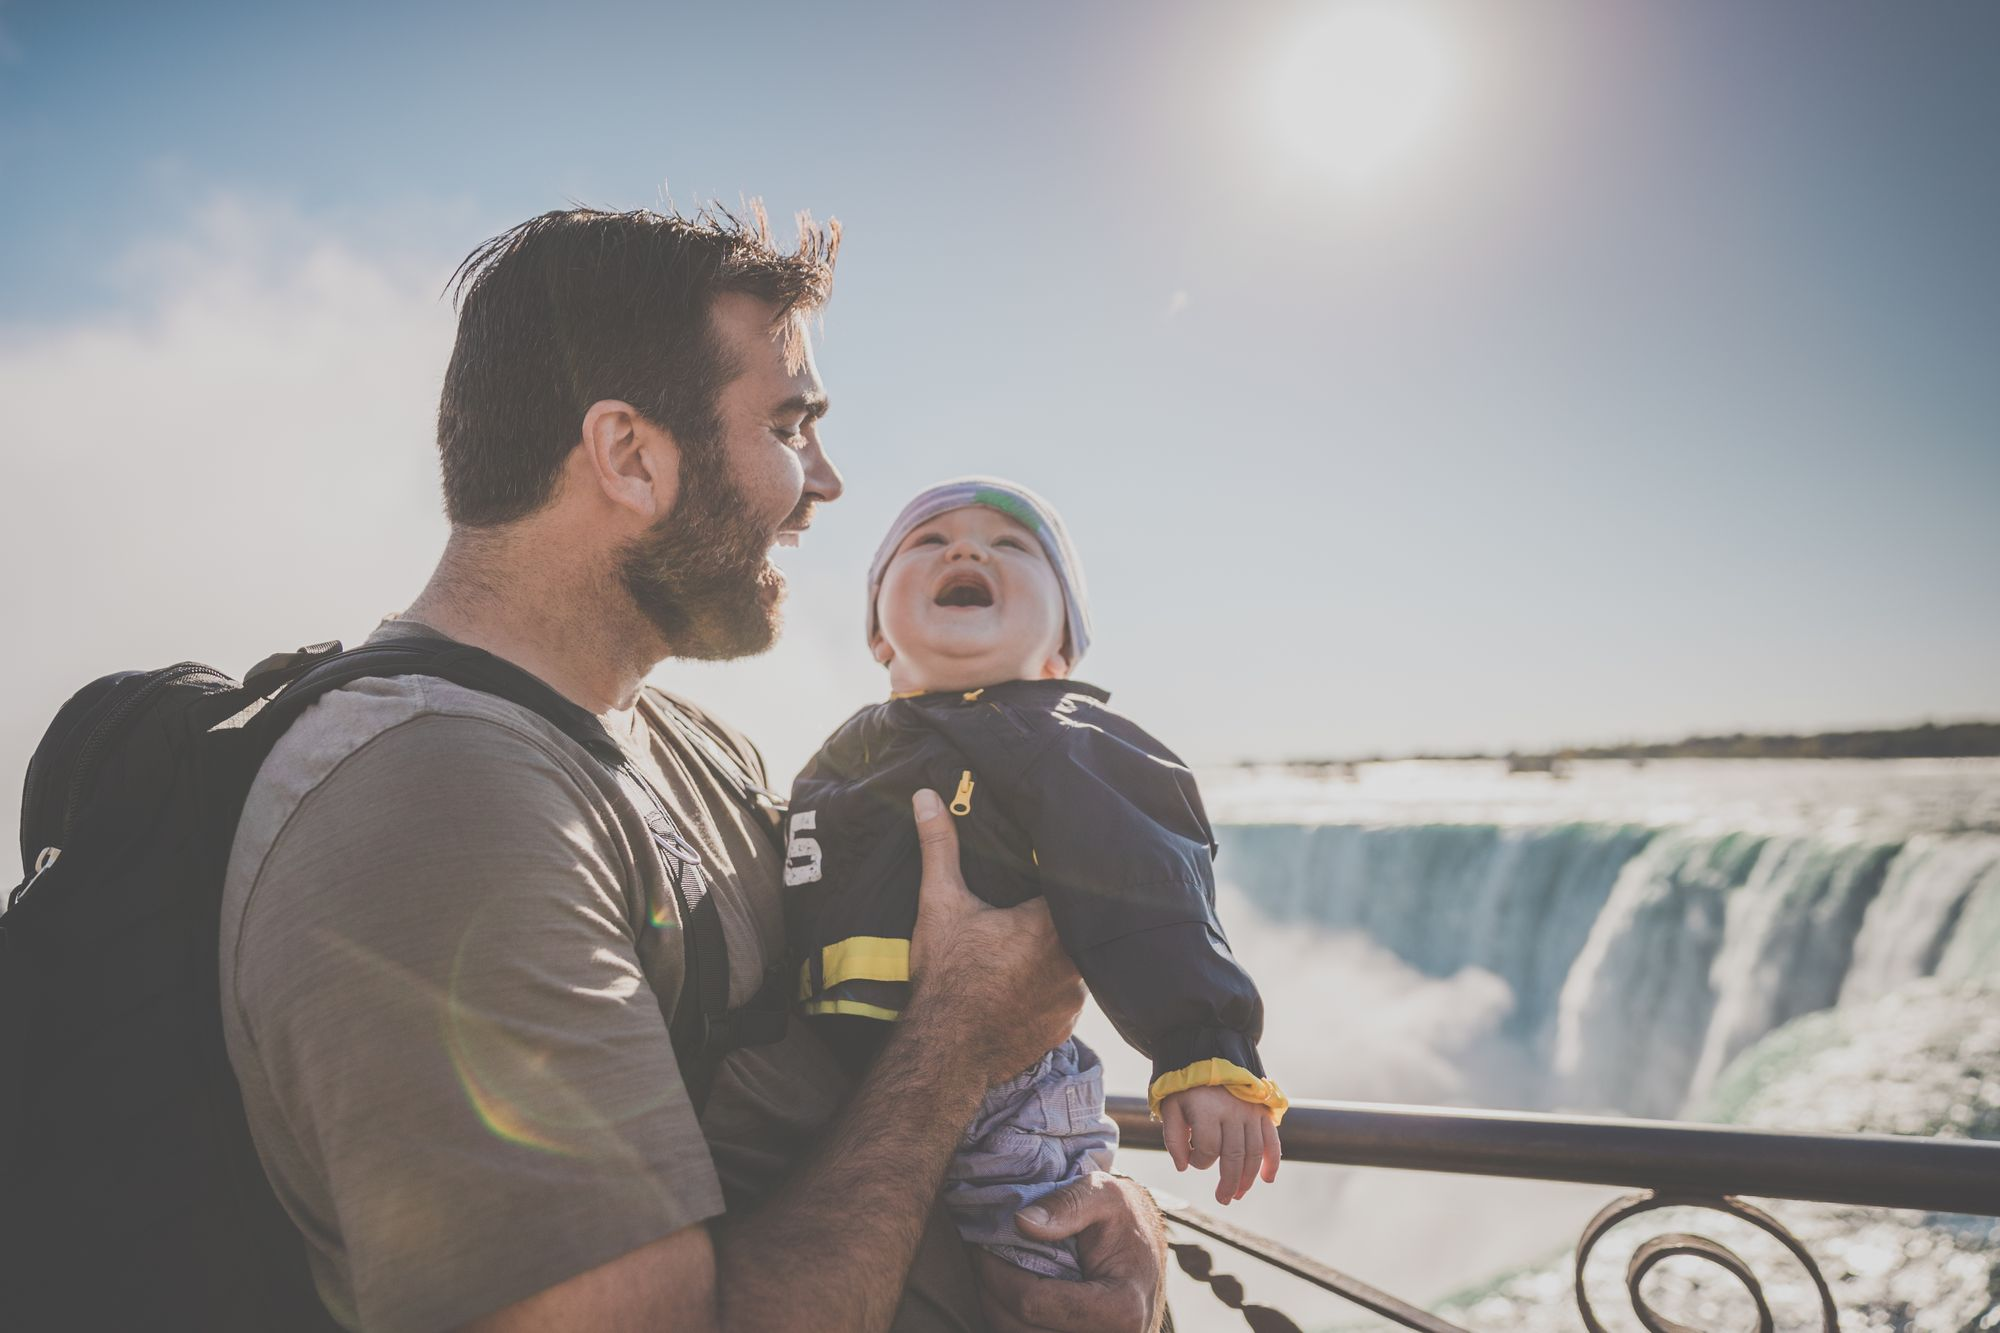 kid-dad-son-travel-homeexchange-family-vacation